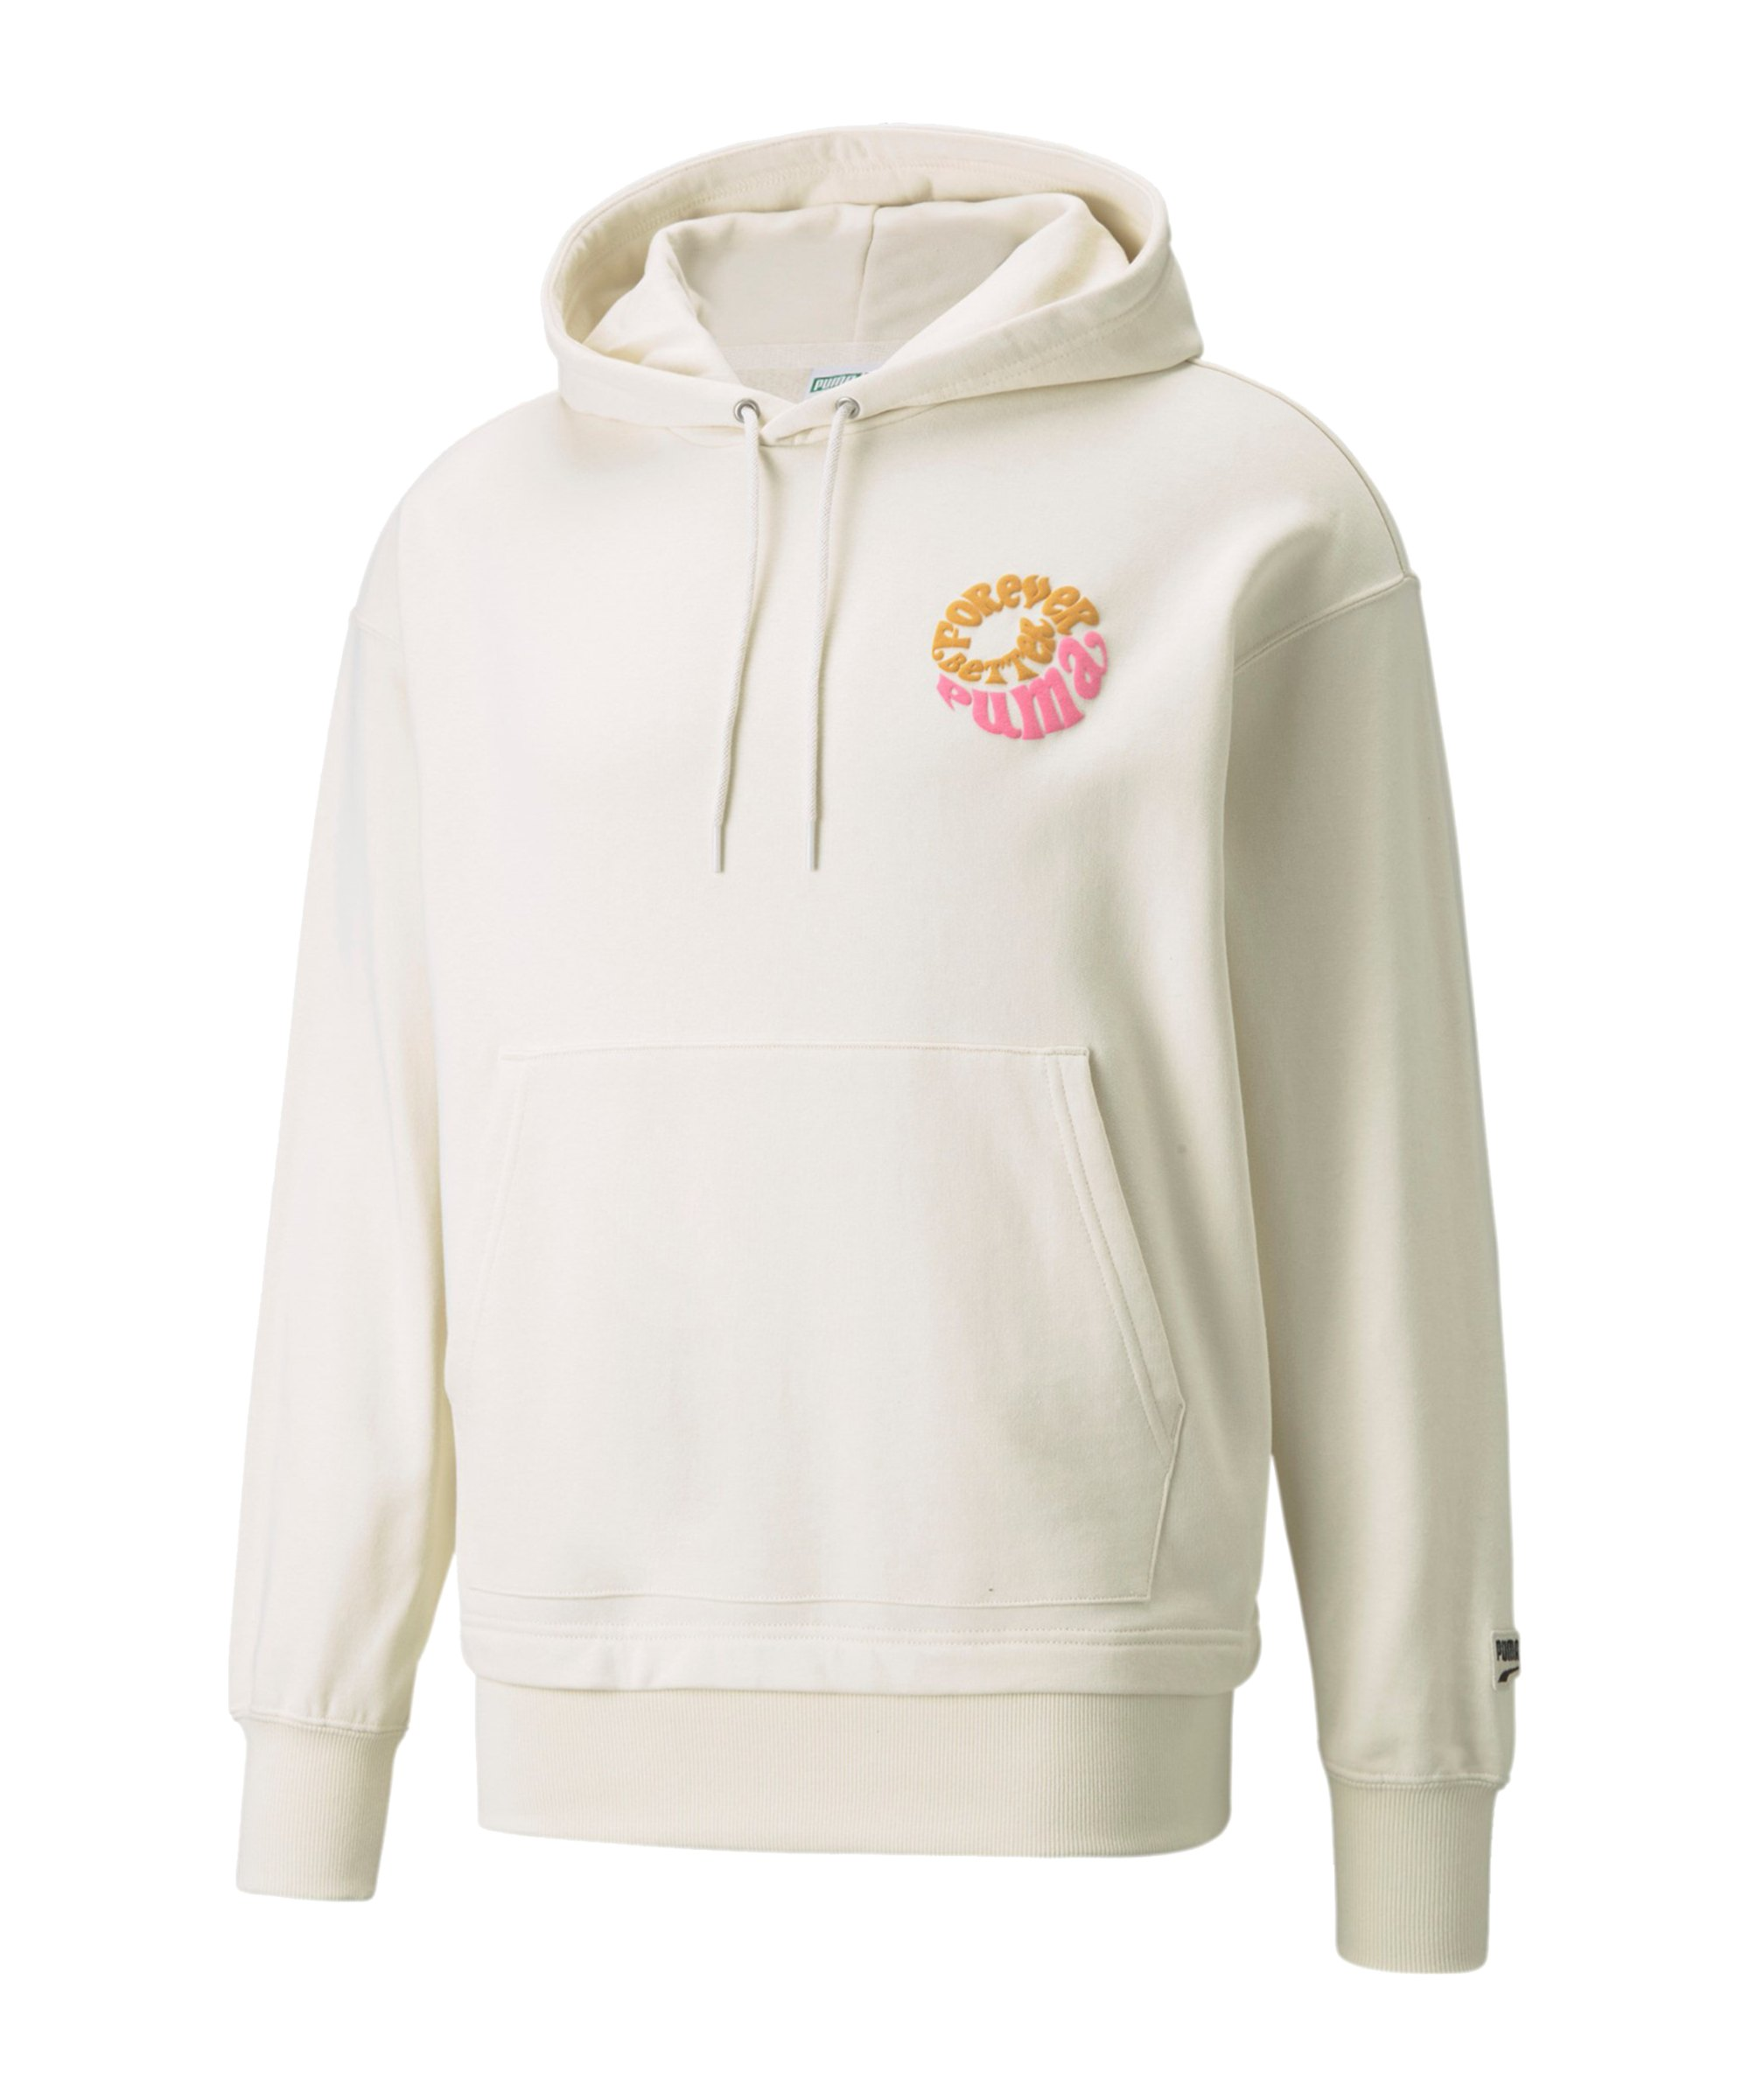 PUMA Downtown Graphic Hoody Weiss F73 - weiss